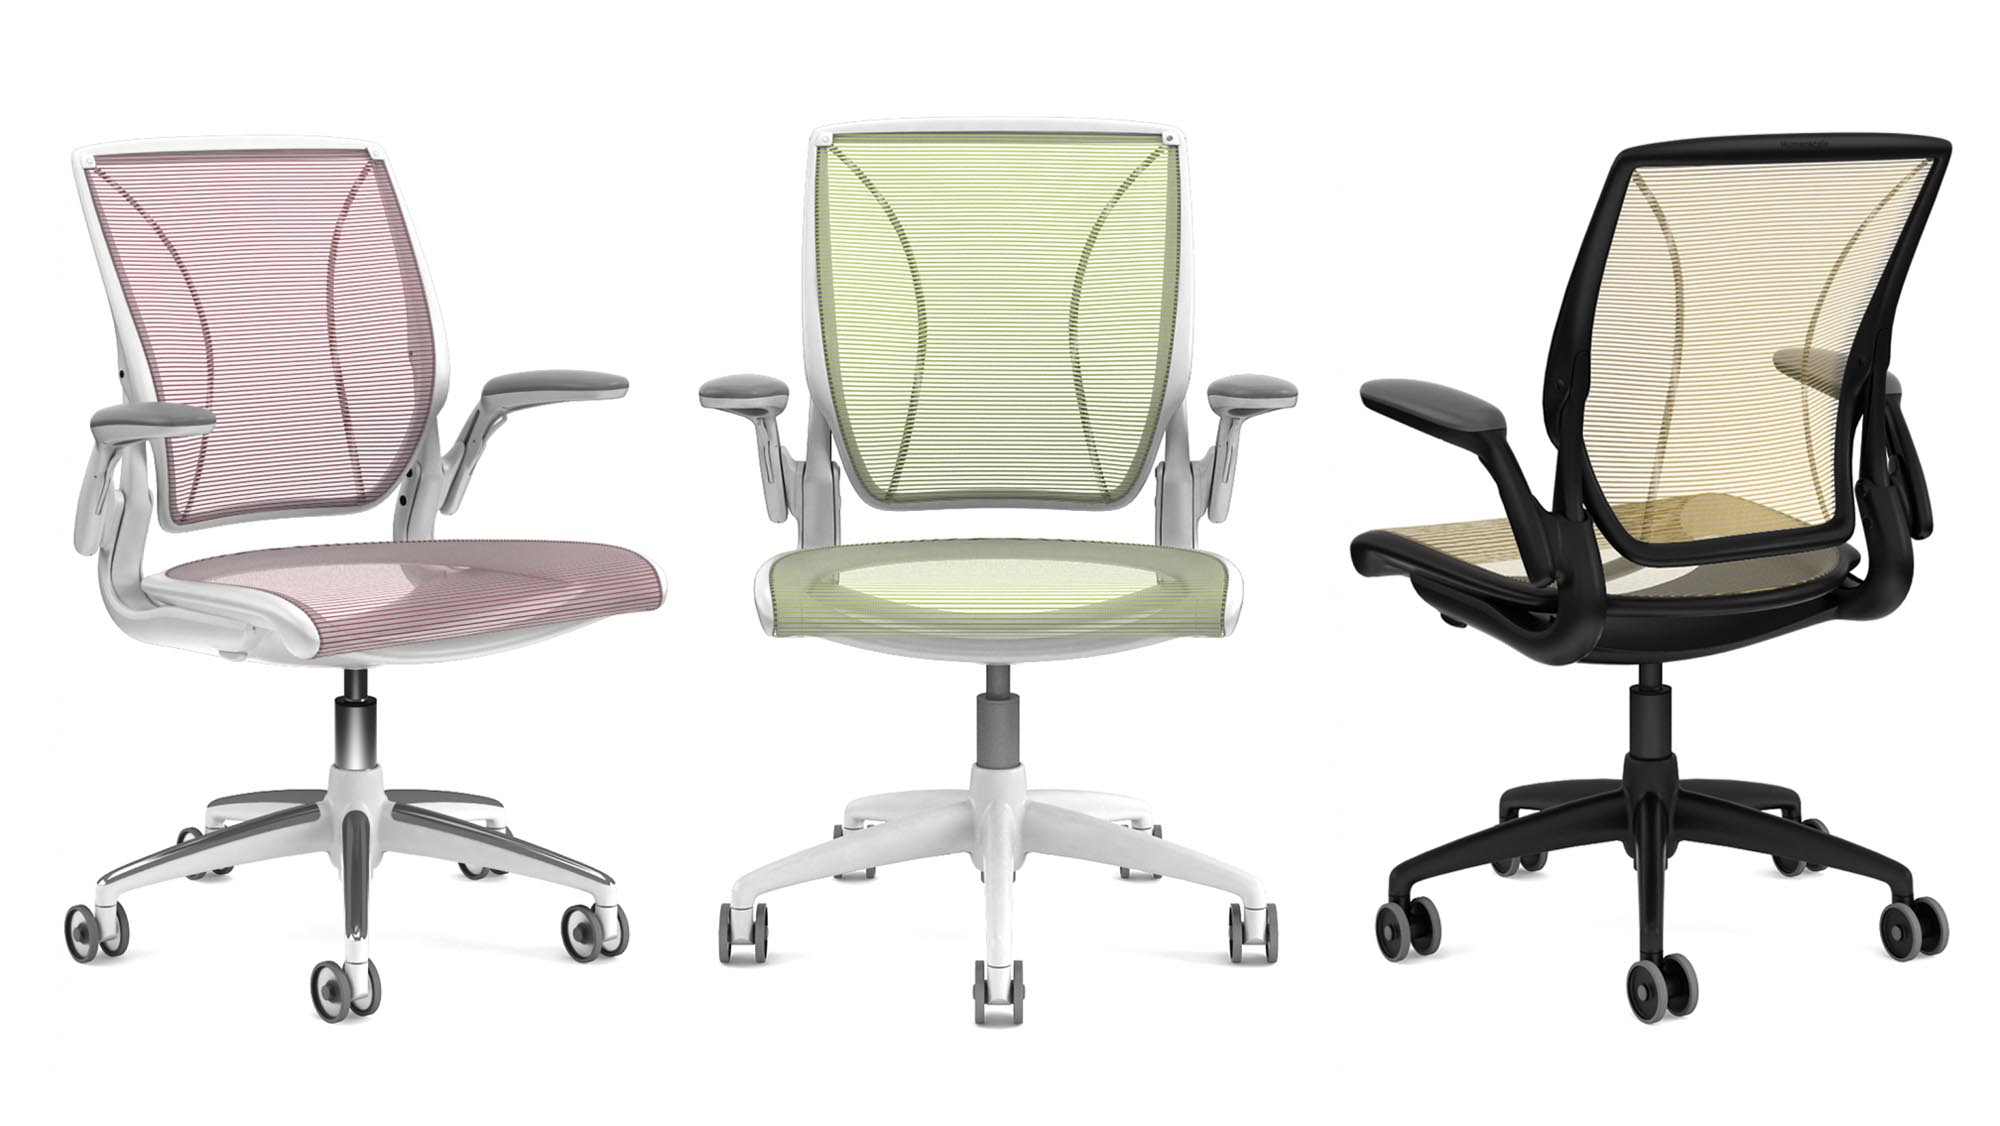 Best office chair 2017 Maintain perfect posture with the best